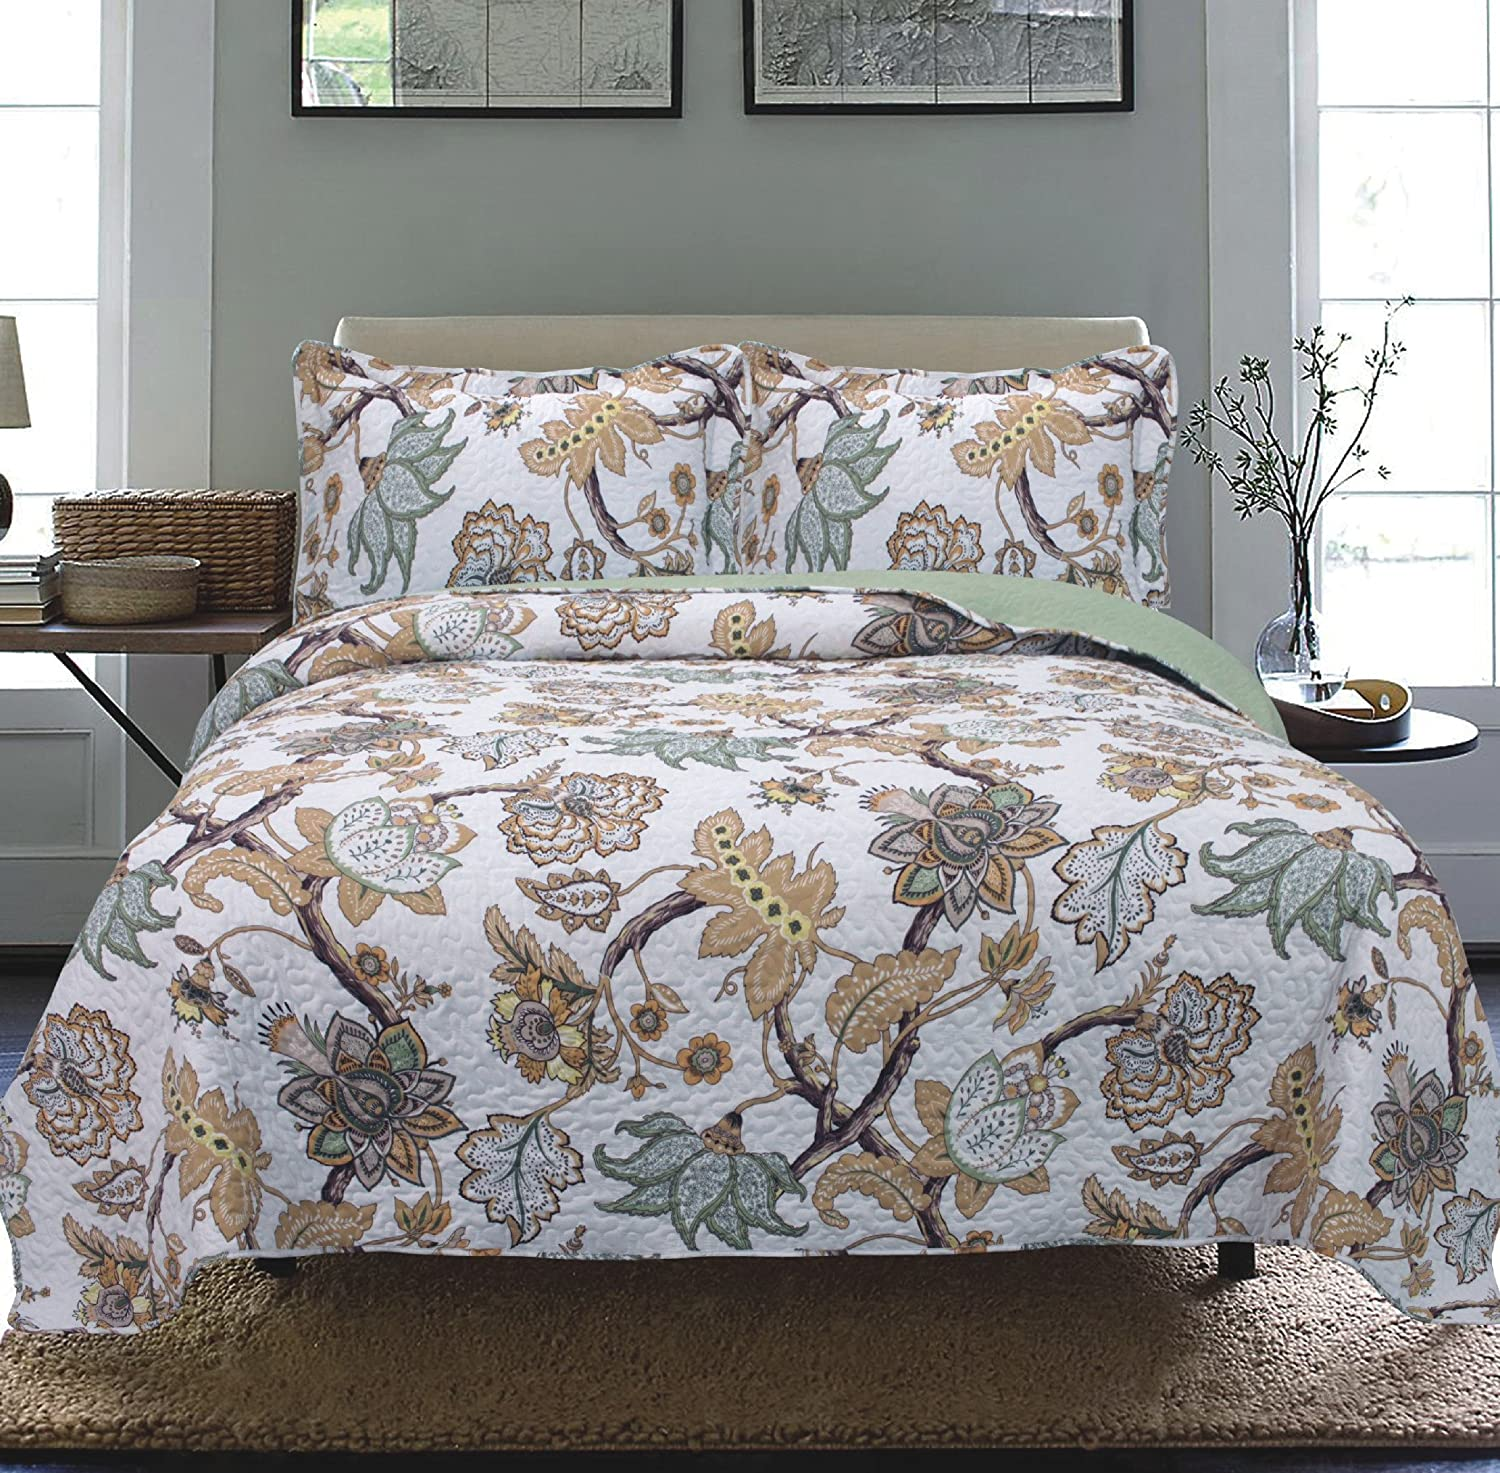 modern floral bedspread coverlet (cal king. all american collection comforters with more – ease bedding with style